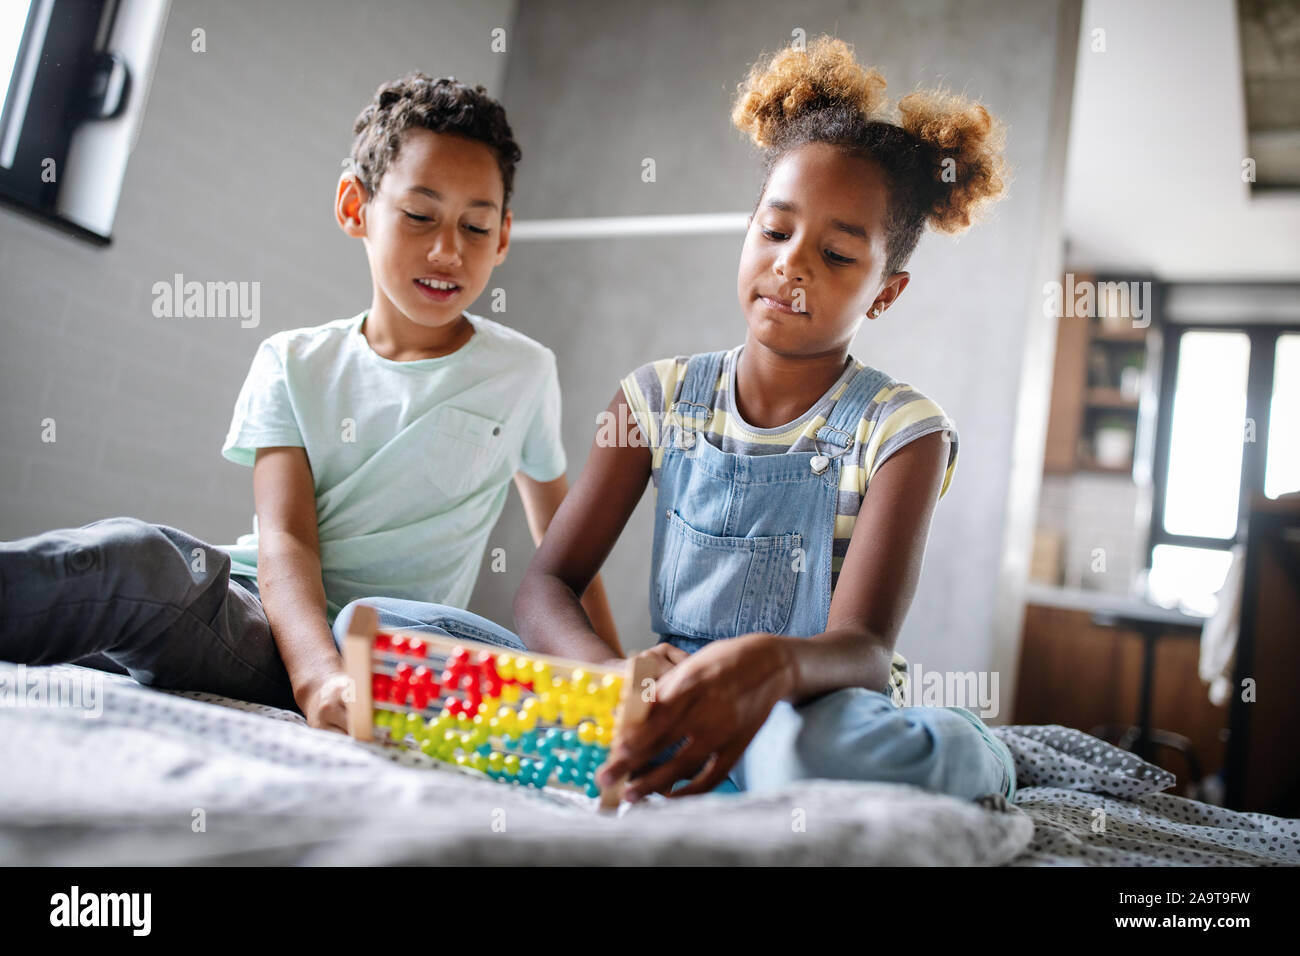 Children, education, plyaing happiness concept. Happy kids entertaining themselves at home Stock Photo